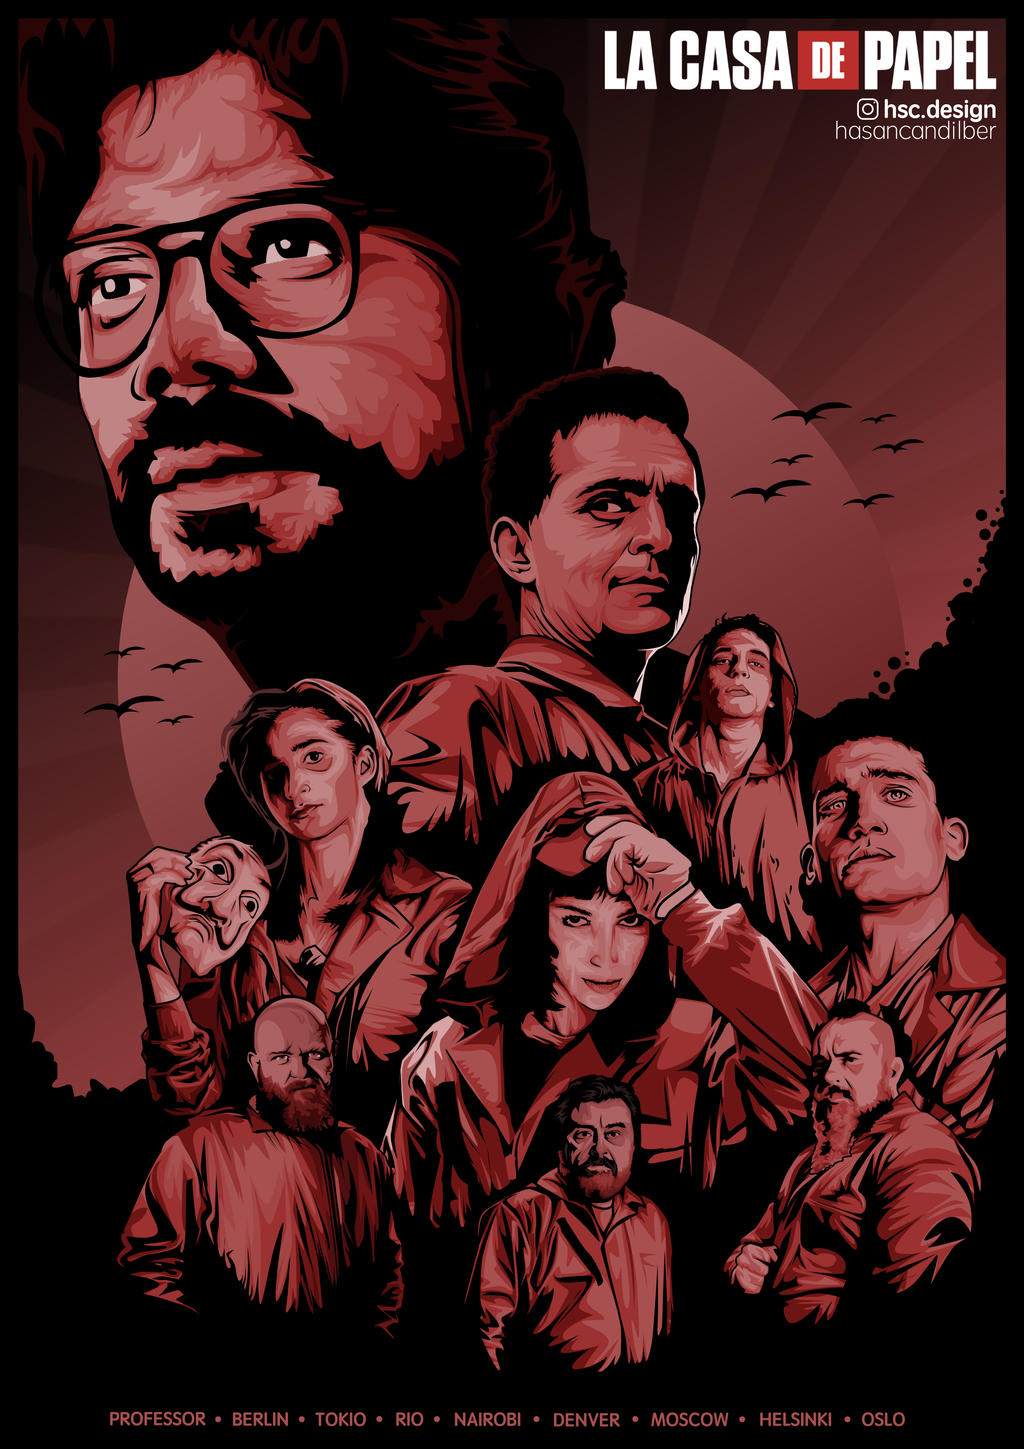 Top 100 La Casa De Papel Berlin Wallpaper 4k Akhaminore